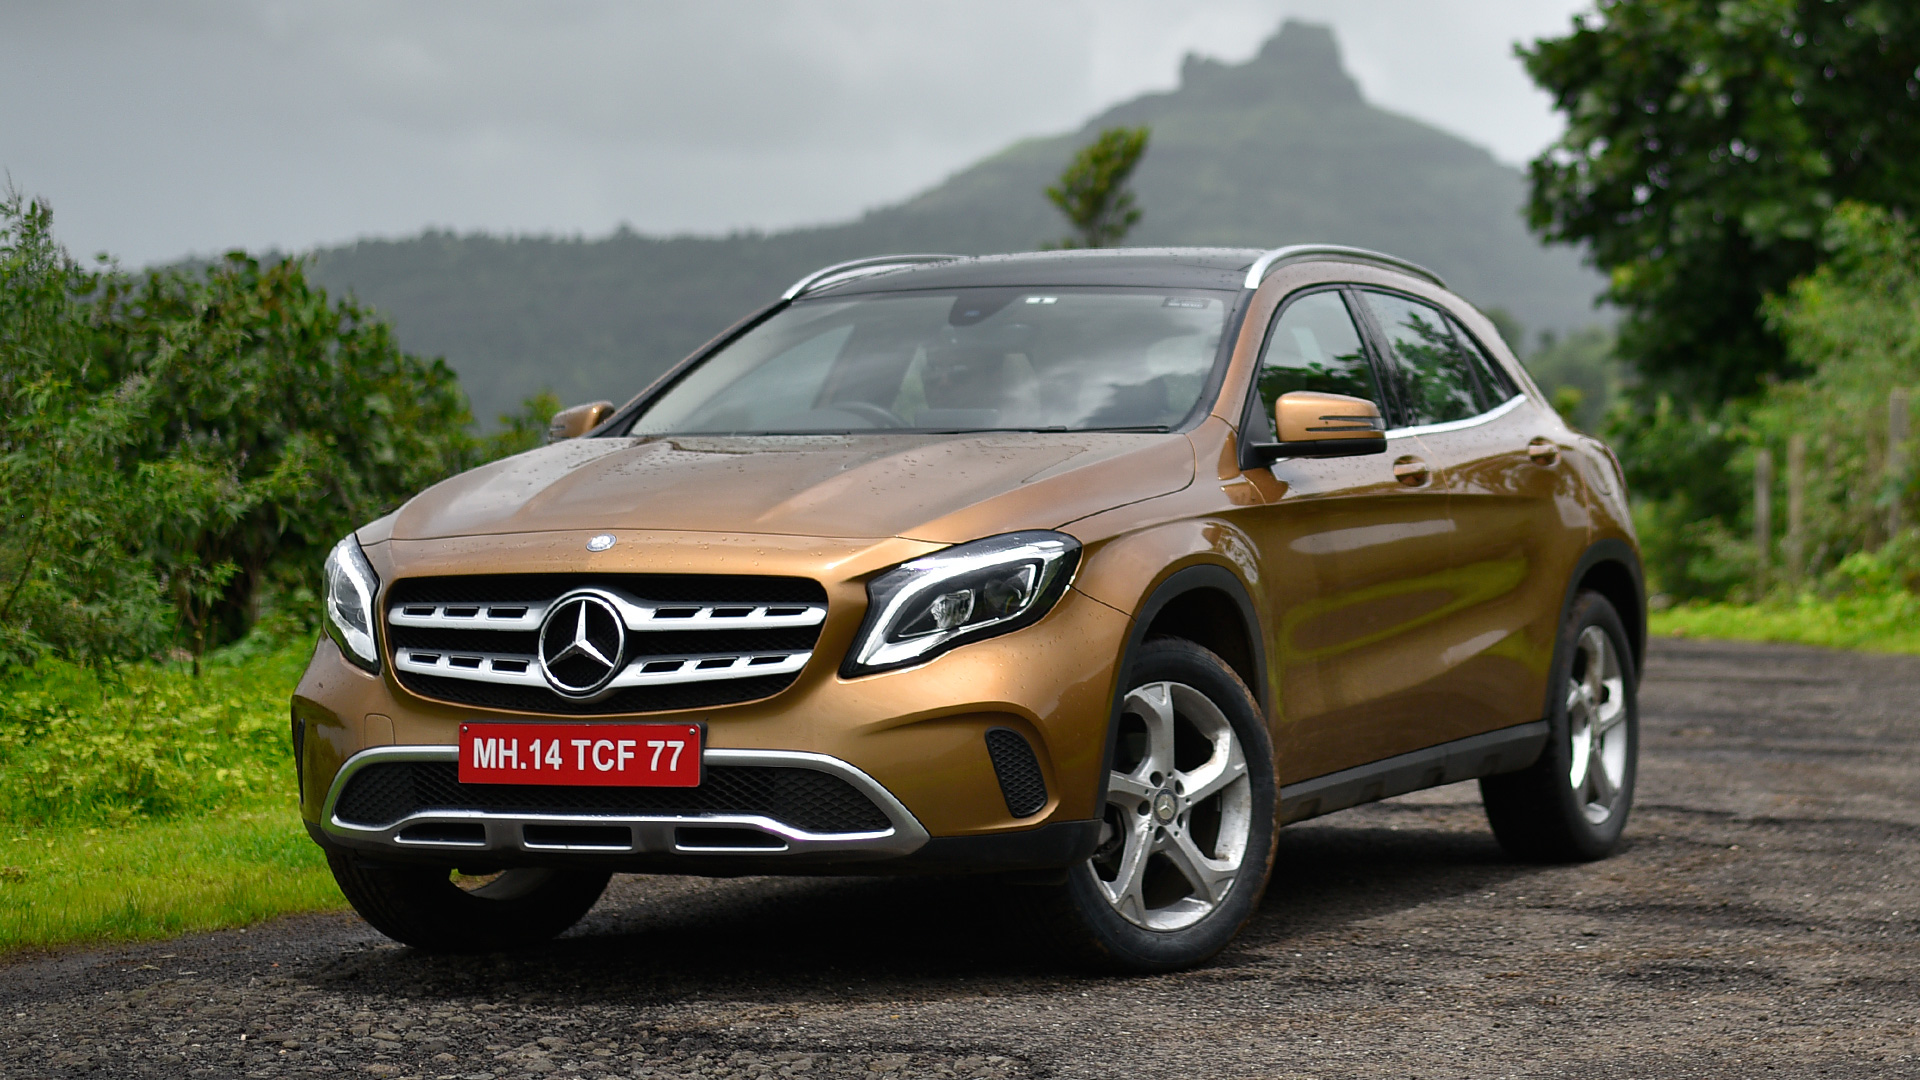 mercedes-benz gla 2018 - price, mileage, reviews, specification